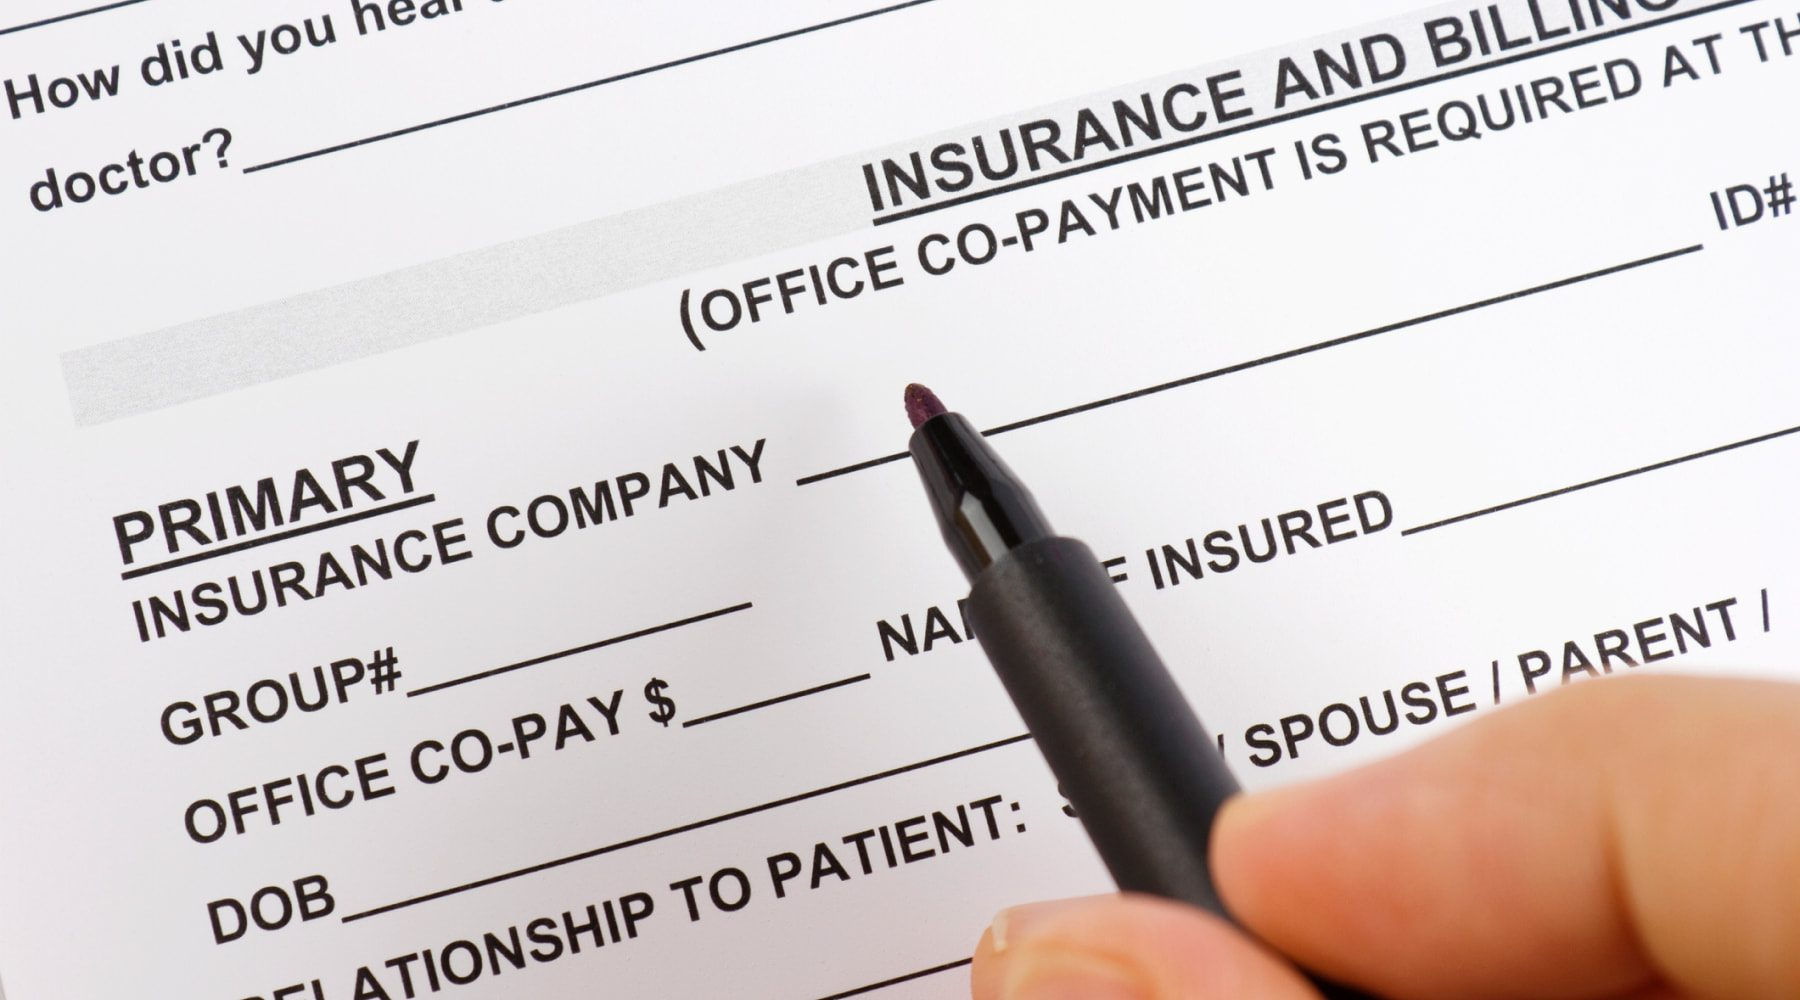 COBRA coverage running out? 3 ways to lock in health insurance now